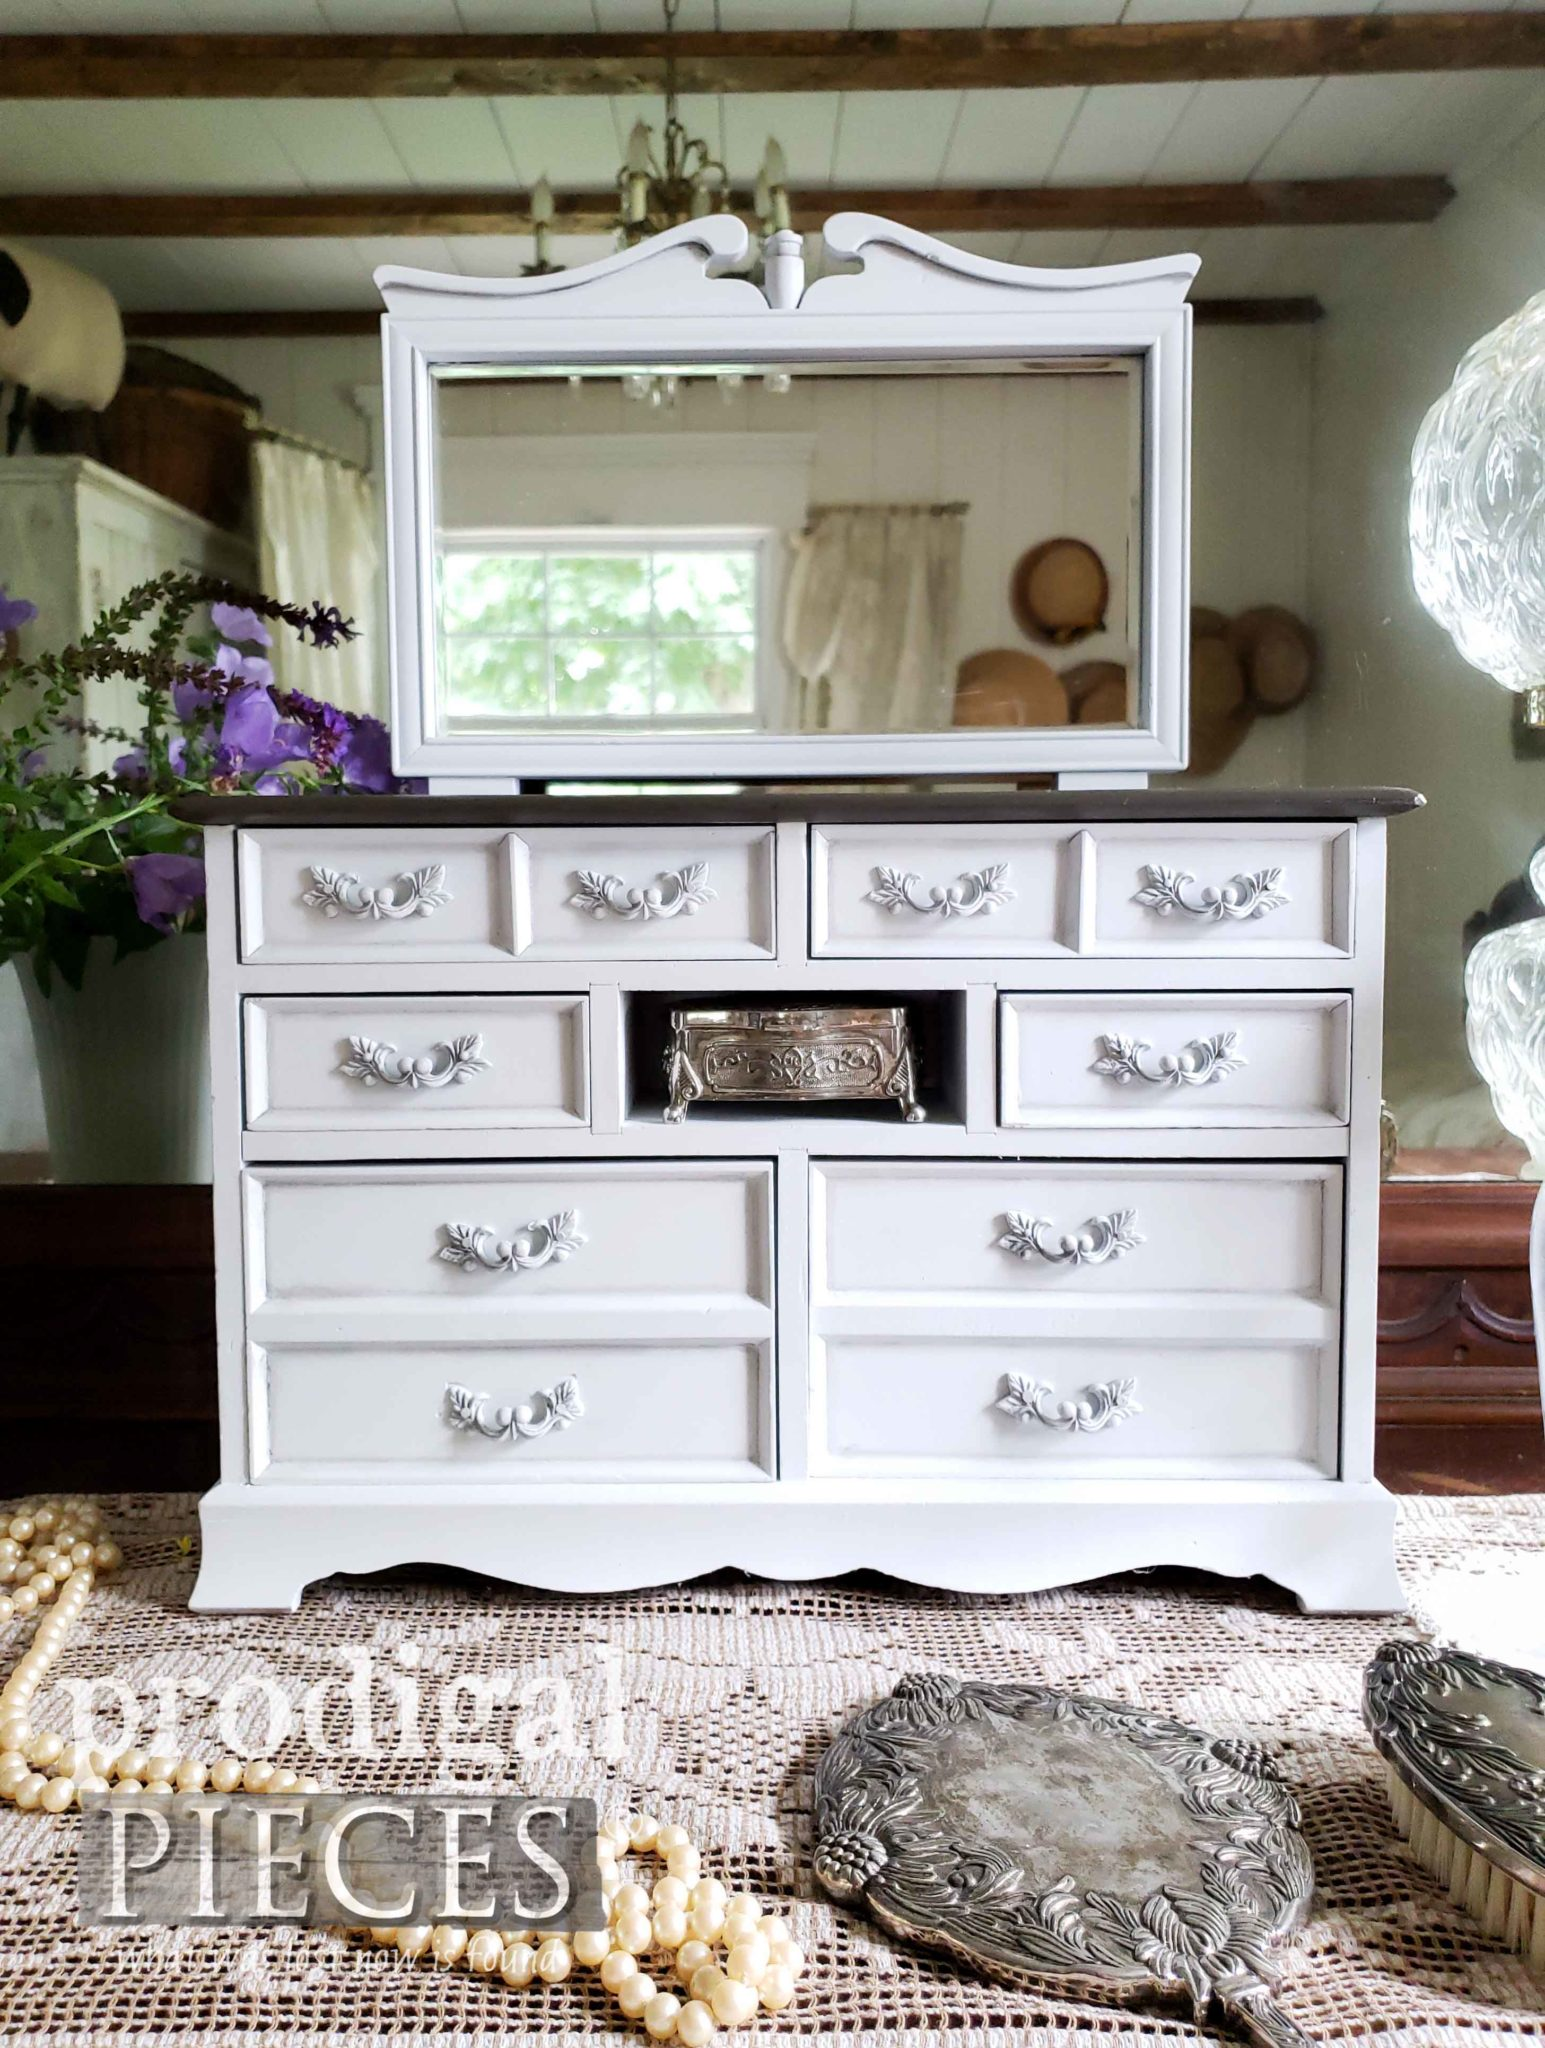 This mini vintage dresser is a darling decor element for the vanity.